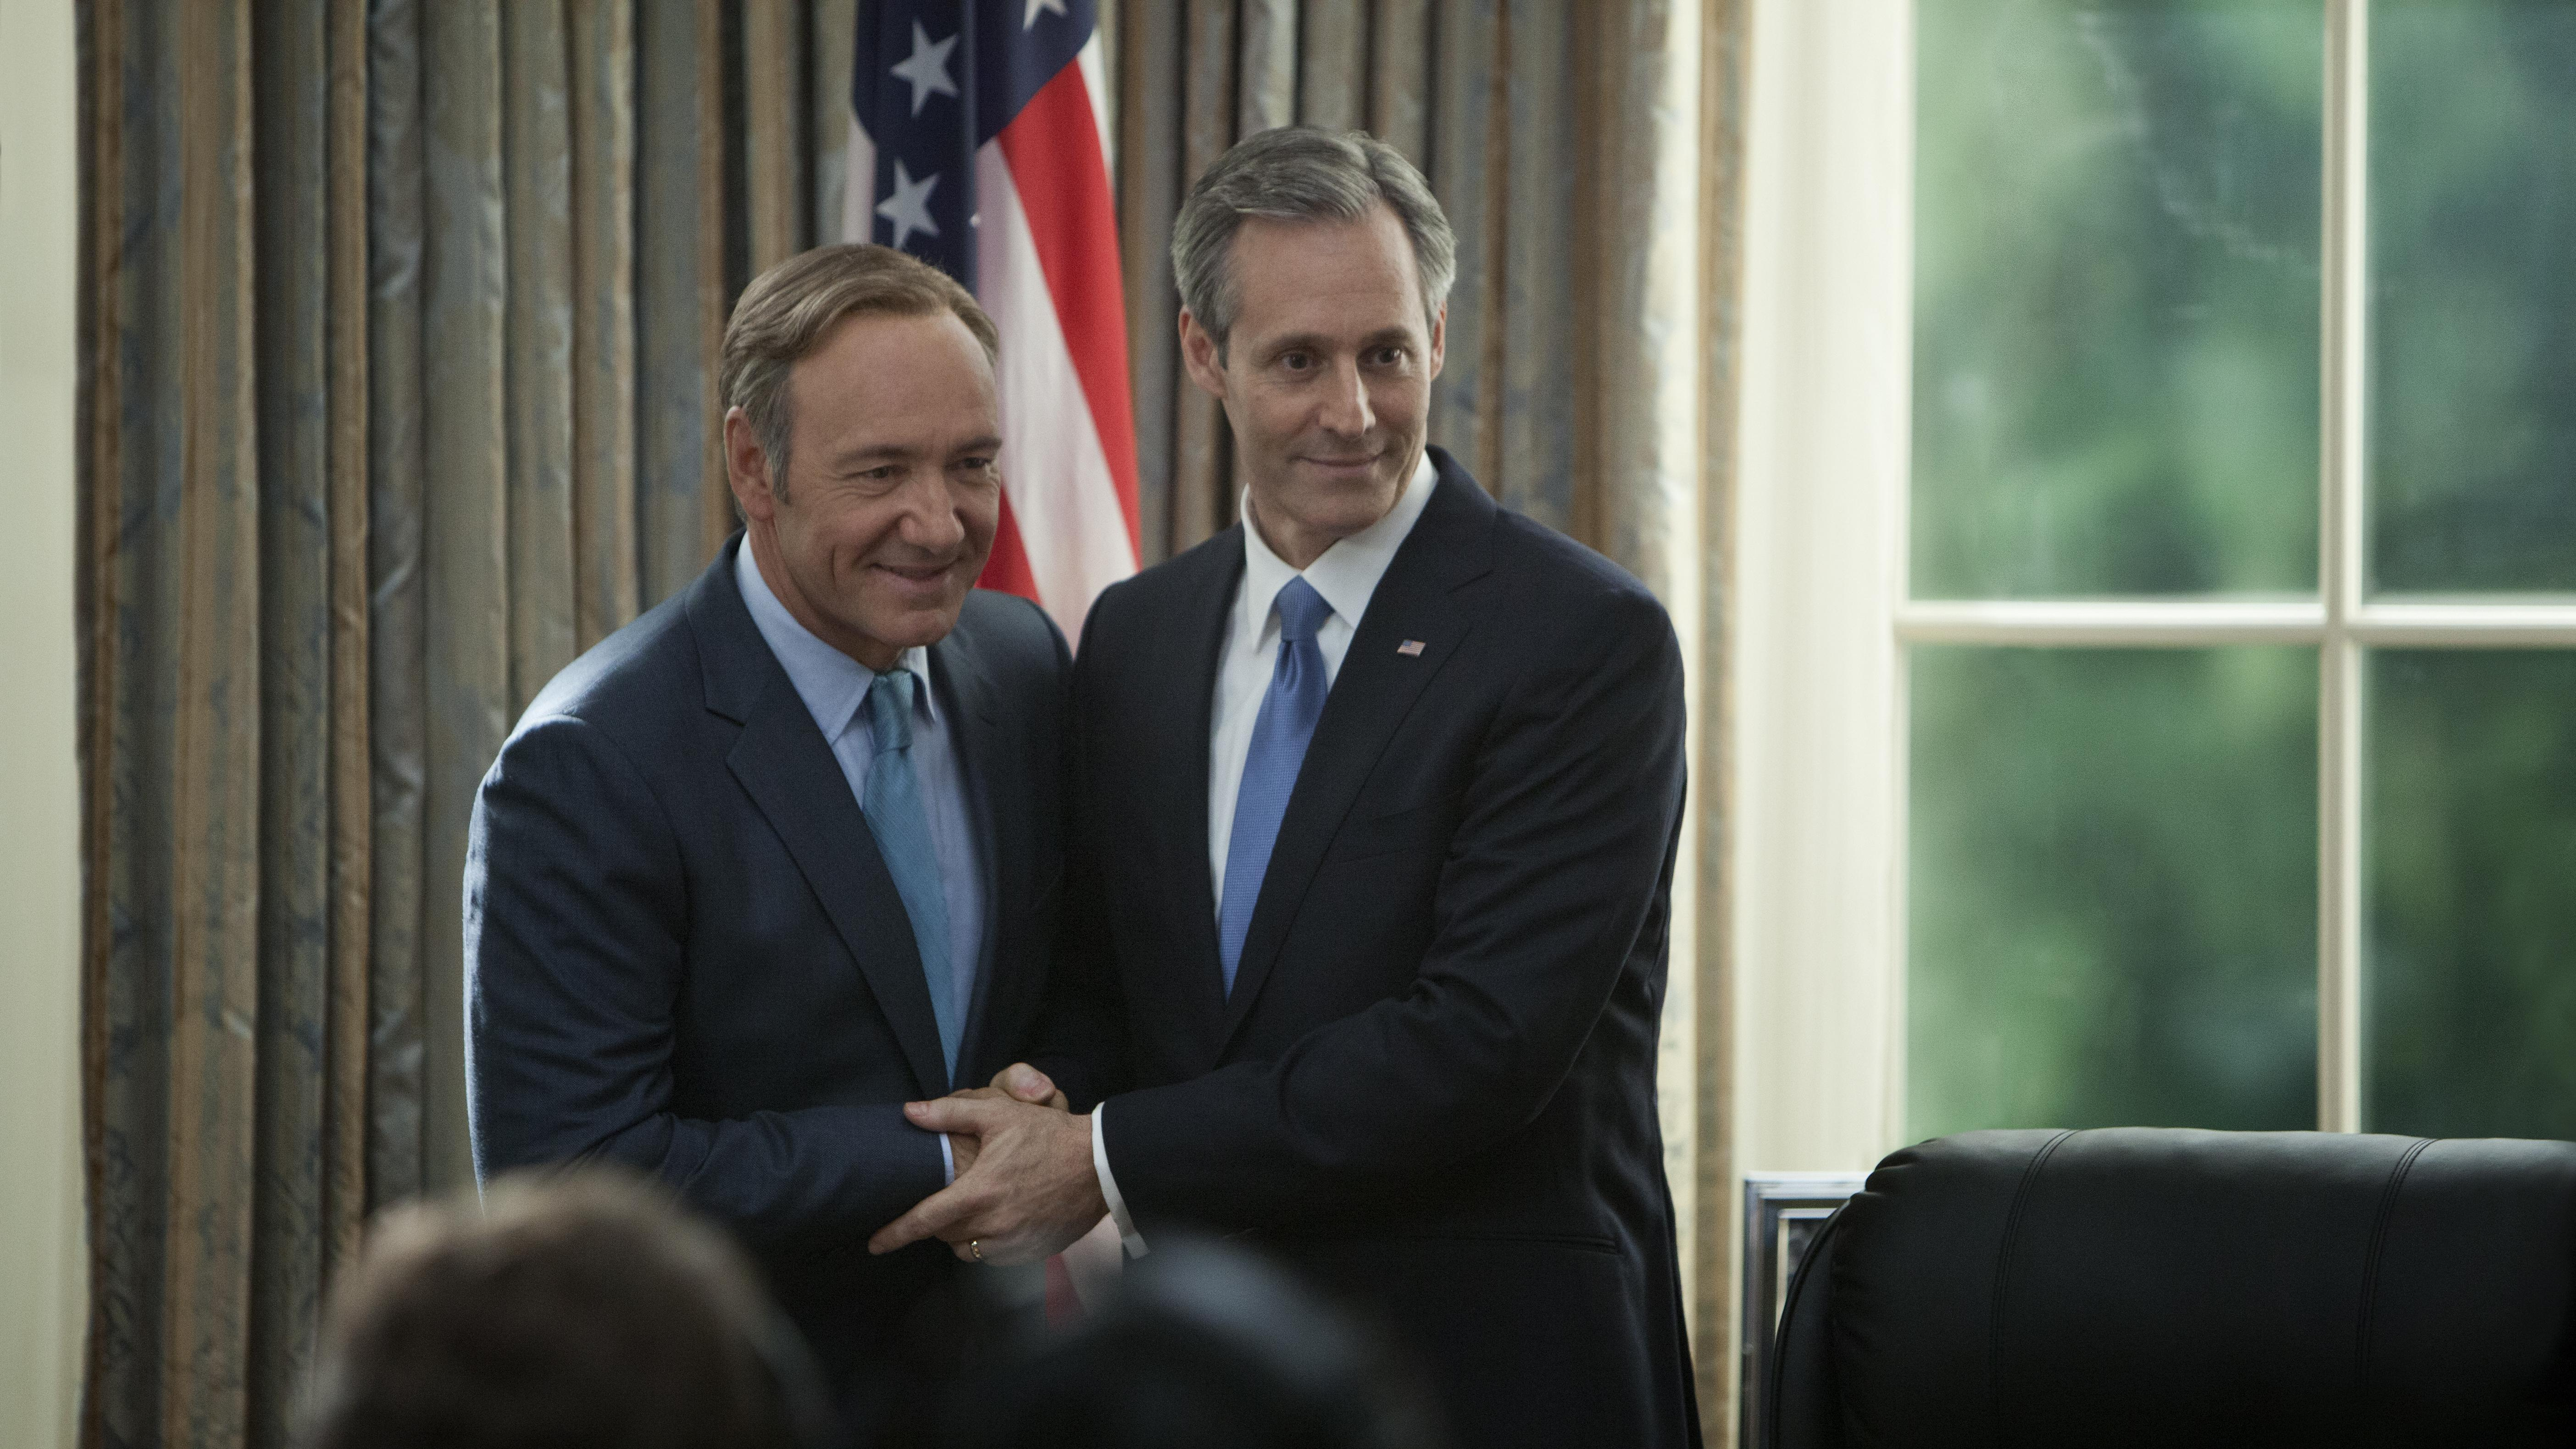 house_of_cards_kevin_spacey_michel_gill_0.jpg